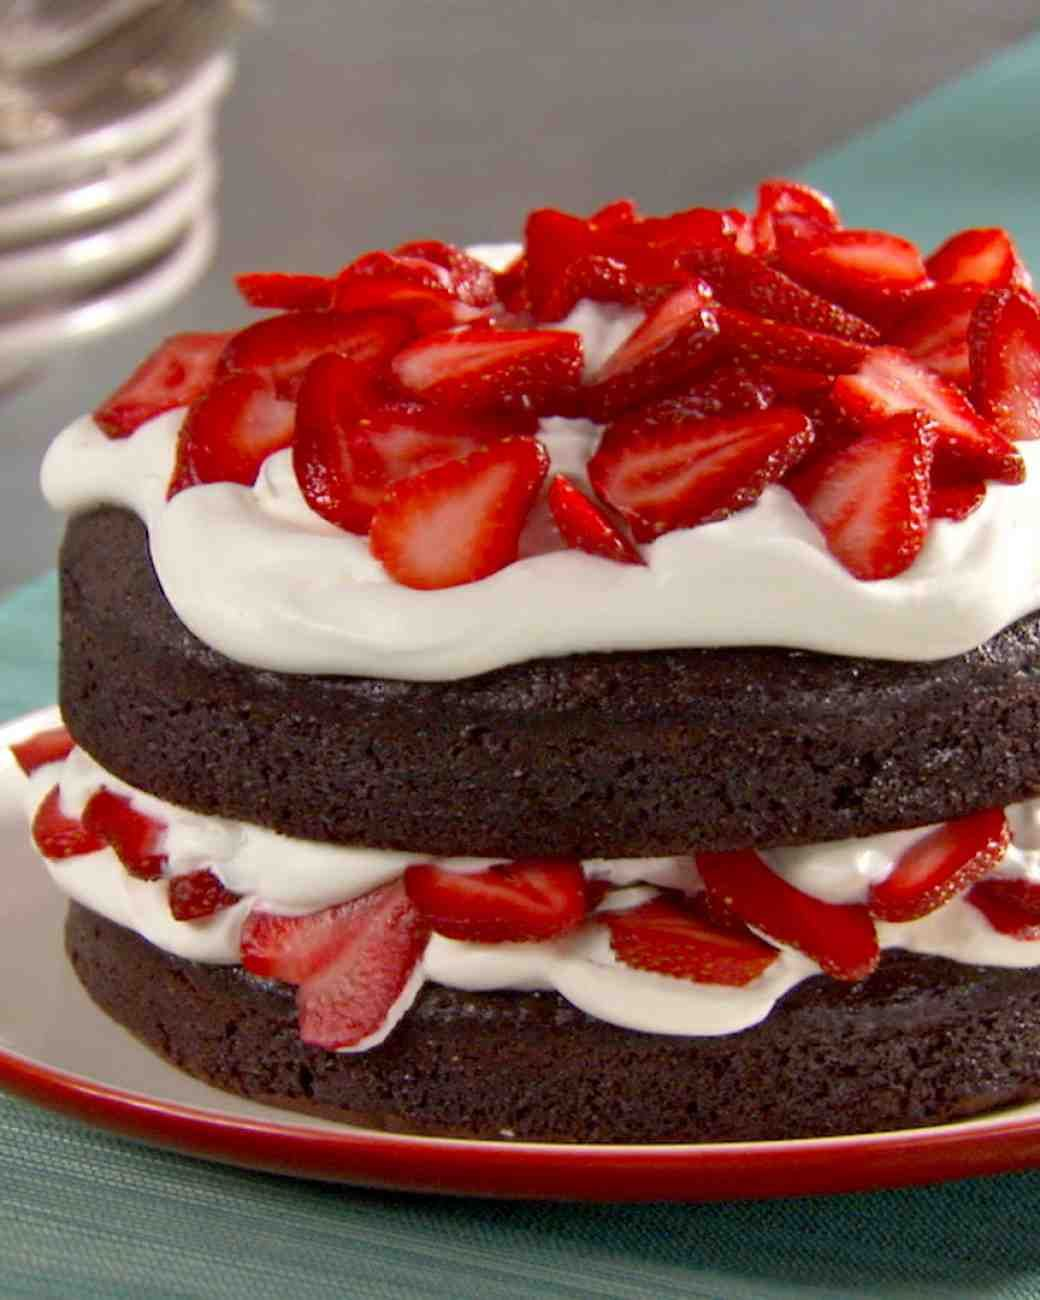 Cake With Chocolate Whipped Cream Frosting : Chocolate Cake with Whipped Cream and Berries Recipe ...